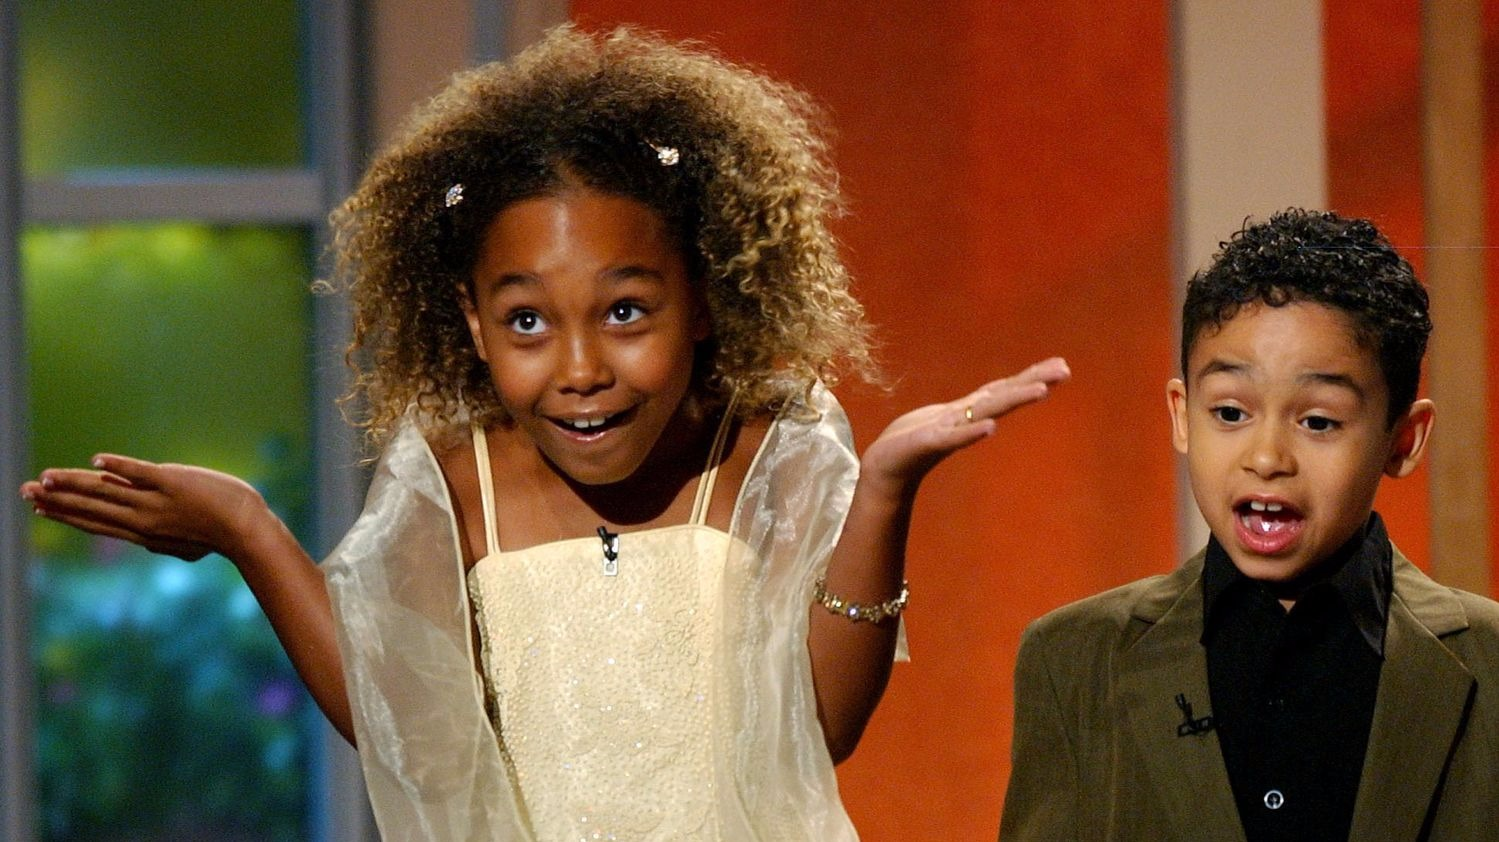 Parker Mckenna Posey captured acting when she was of age 5, she is wearing a white skirt and is giving a surprised expression.